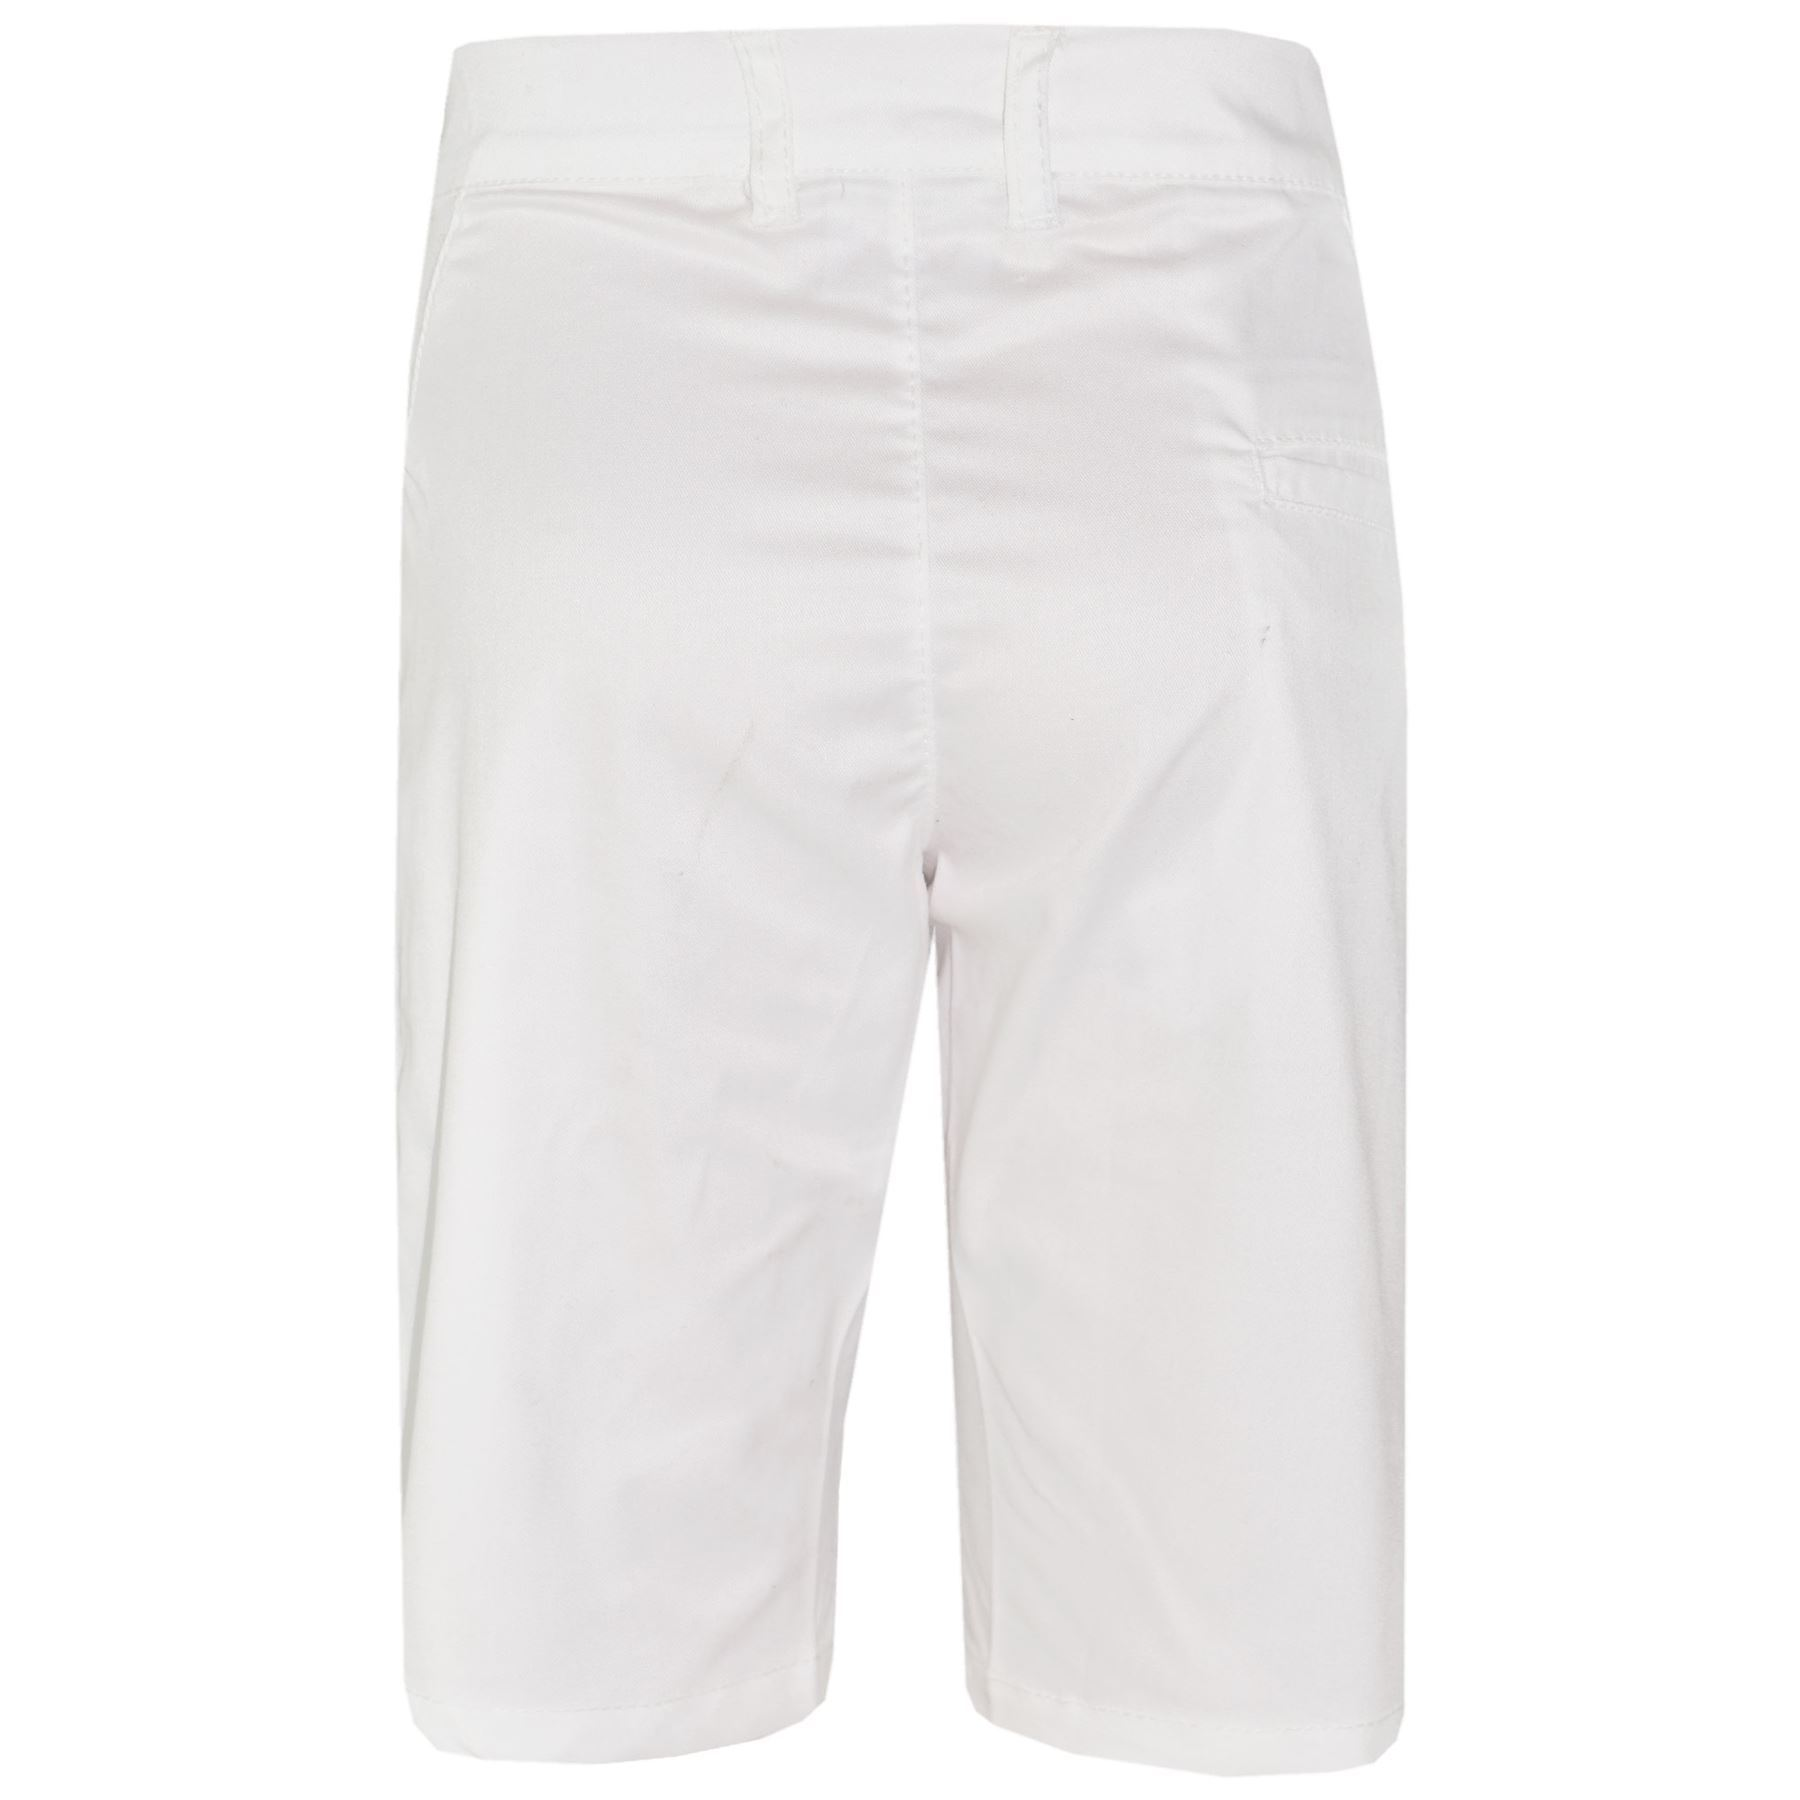 Boys-Shorts-Kids-Chino-Shorts-Summer-Knee-Length-Half-Pant-New-Age-3-16-Years thumbnail 21